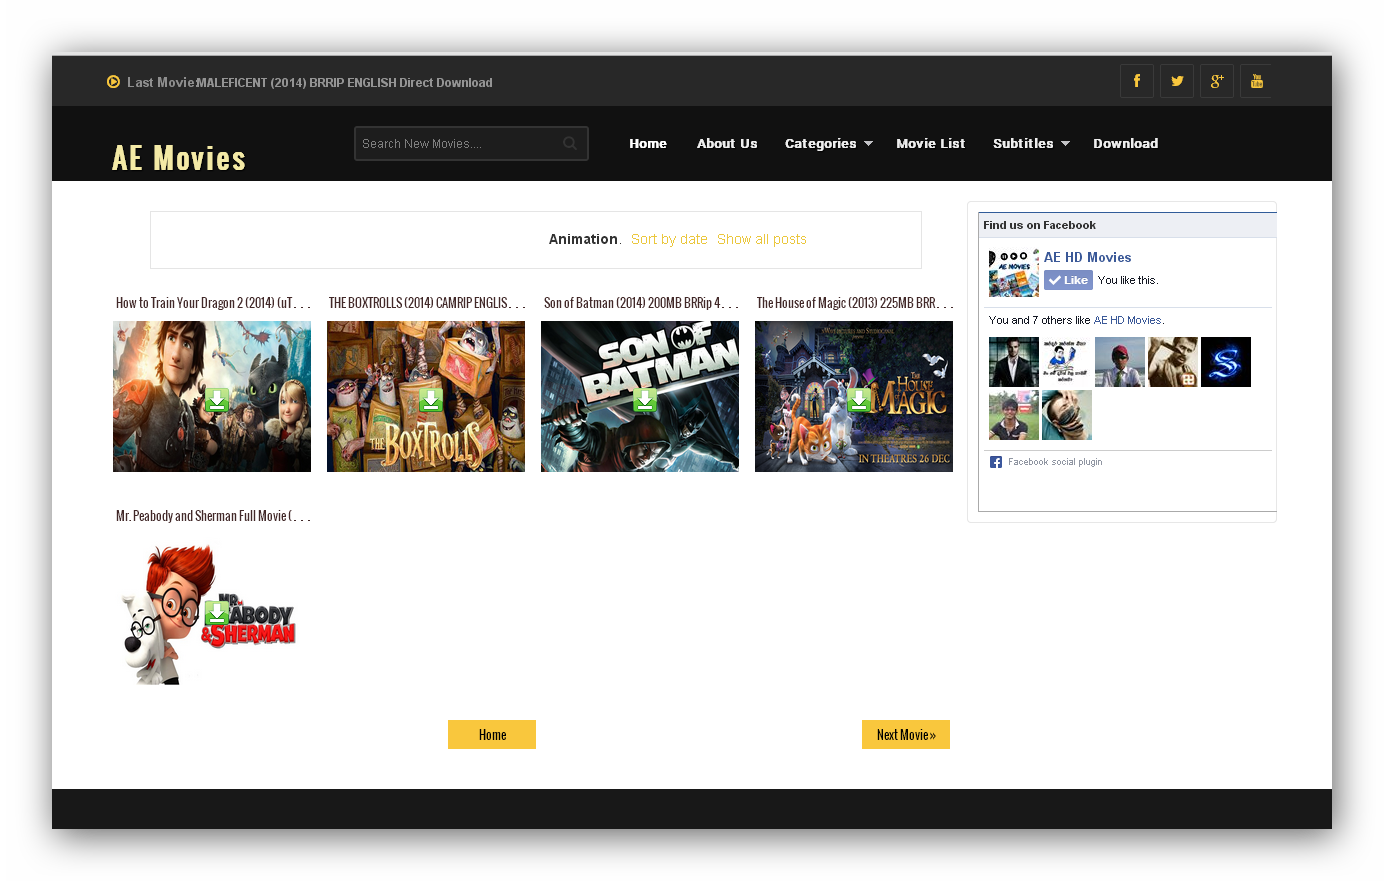 Direct link download movies : Coupons com scam